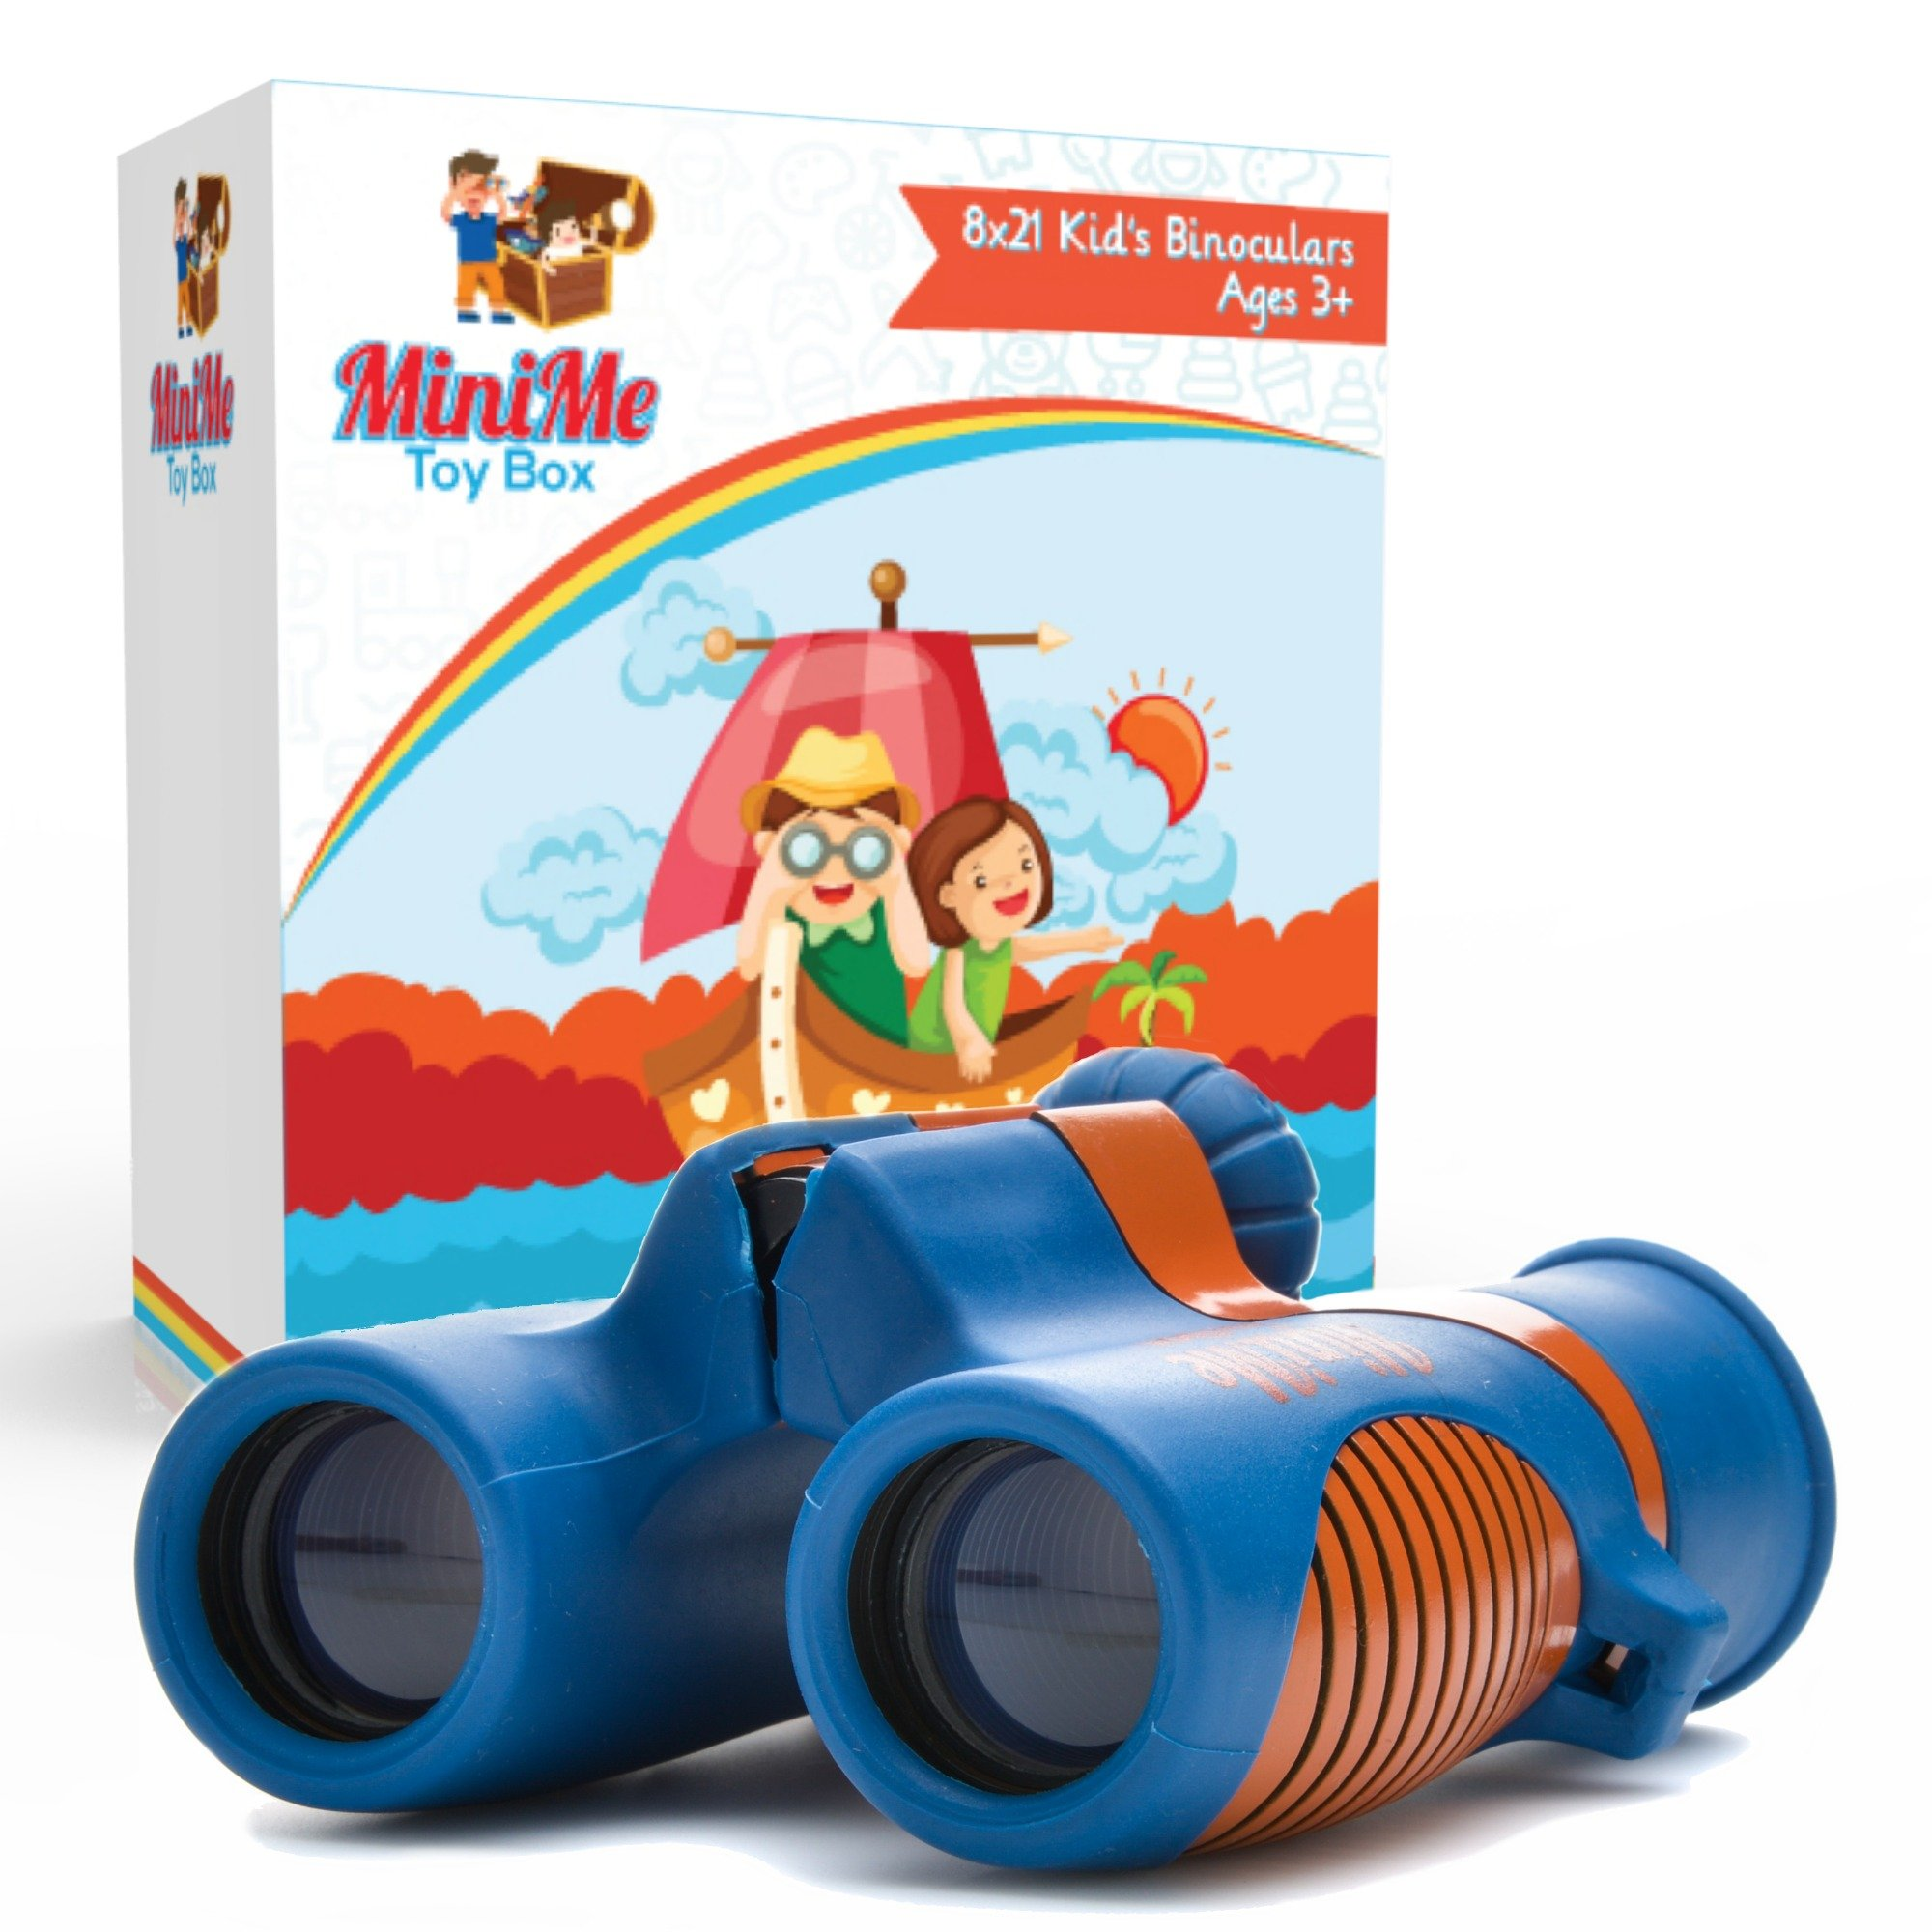 Kids Binoculars Best for Bird Watching, Outdoor Learning, Backyard Safari, and Camping - Shock Resistant 8x21 Magnification - Lightweight, Compact and Easy to Focus, Great Toys for Girls and Boys